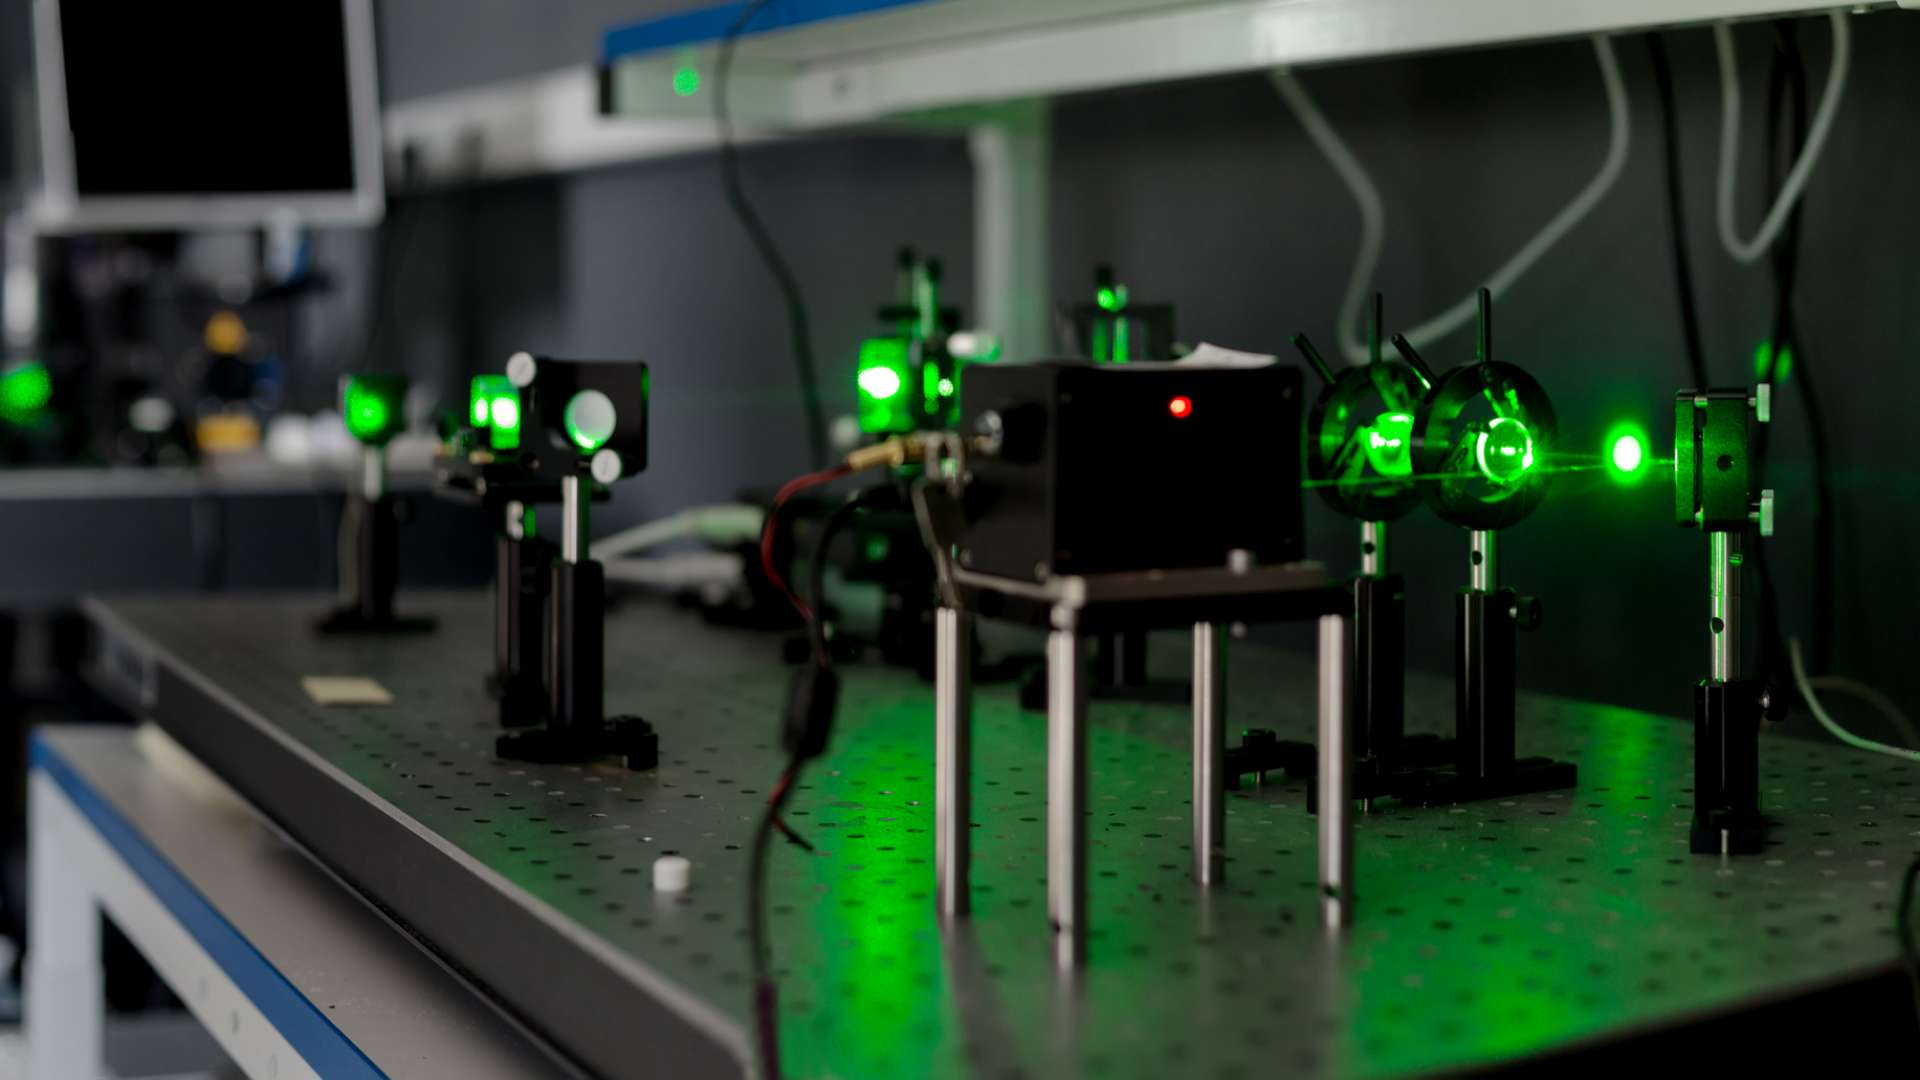 A photo of a photon laser being used in a laboratory